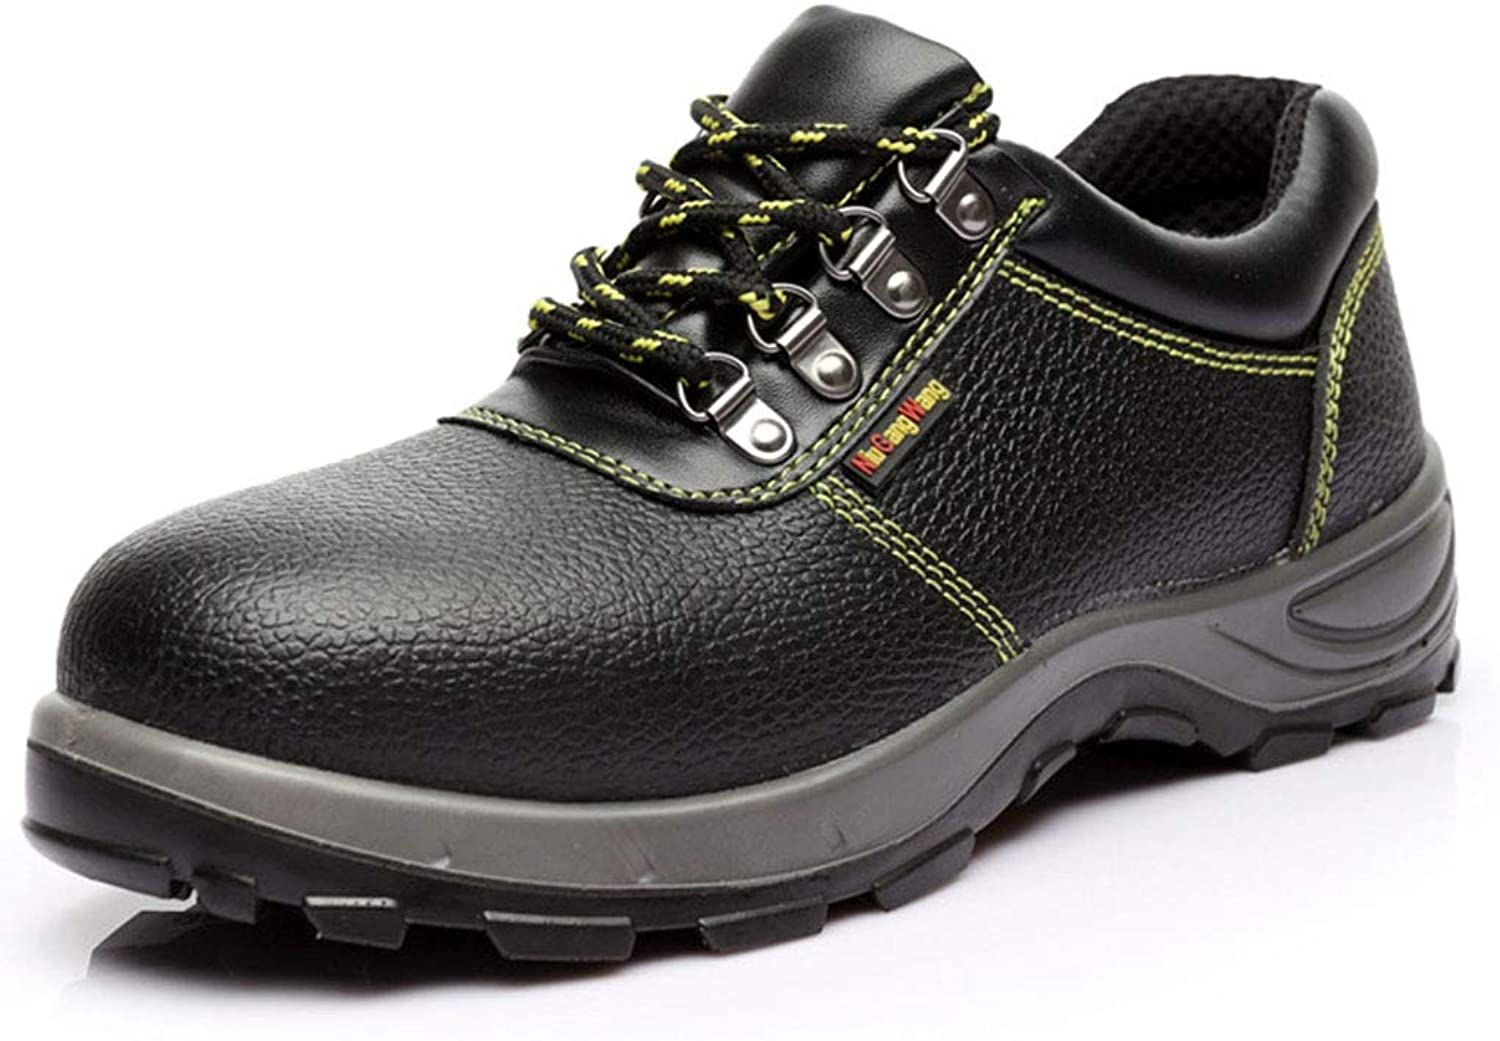 Men's Work Footwear Steel Toe Cap Safety Breathable Hiking Anti-Smash Puncture Prevention Unisex Work Insulated shoes